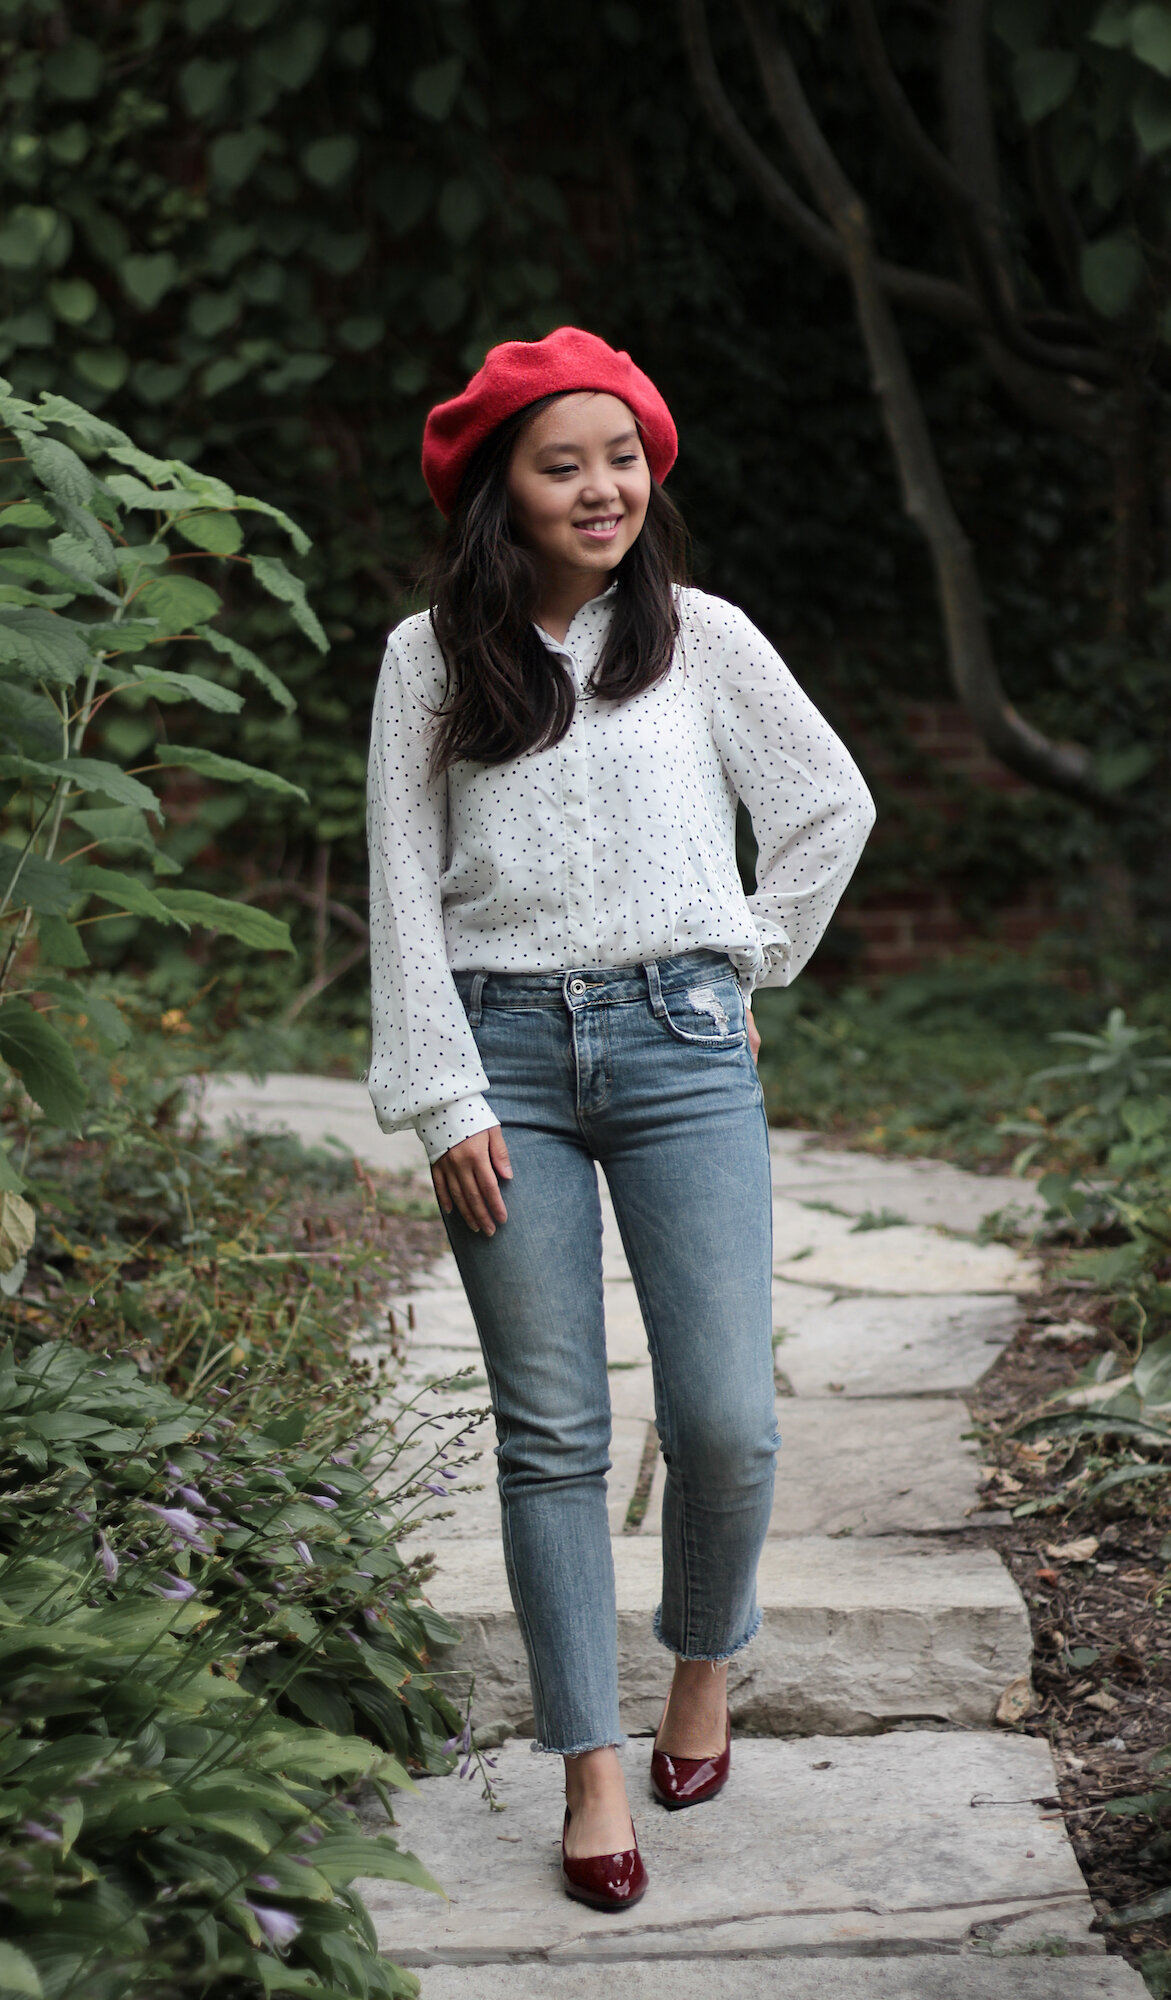 red beret 04 outfit - petite fashion blogger.jpeg